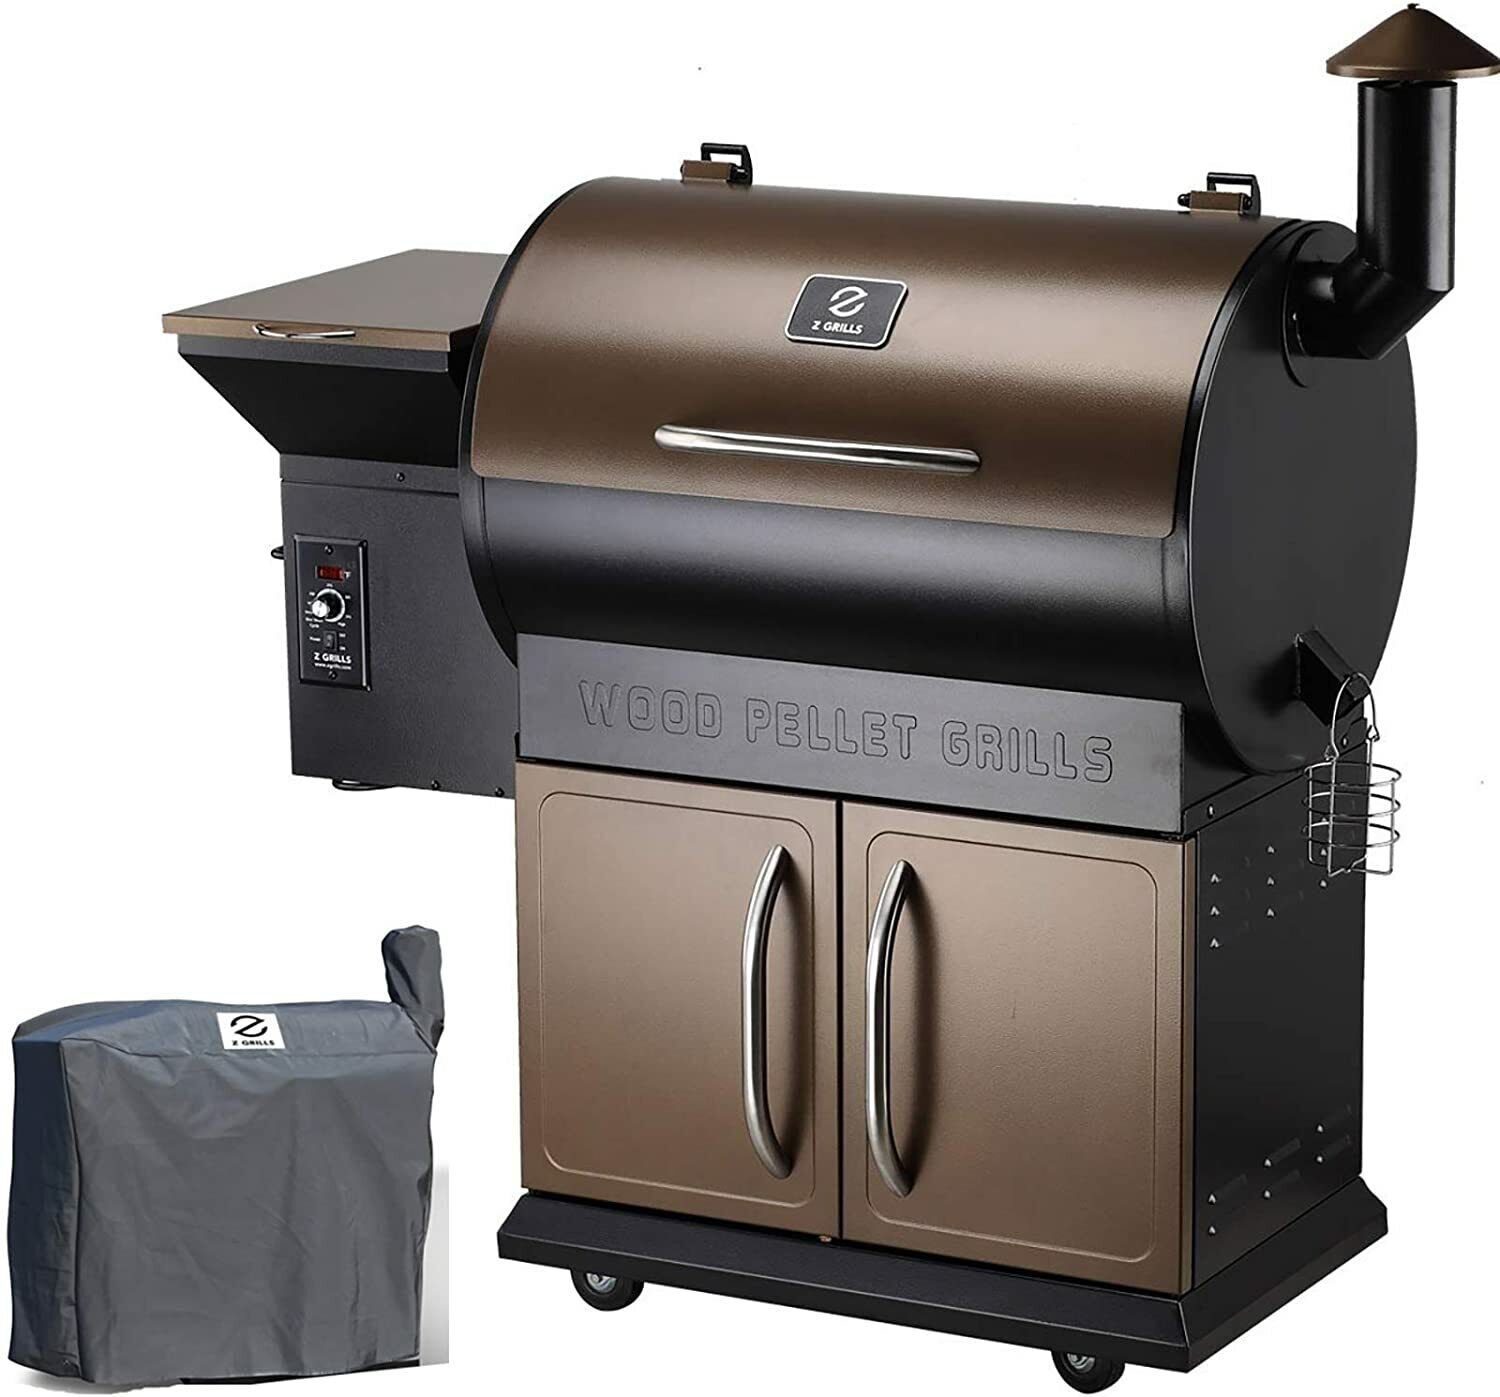 Z GRILLS 2021 Upgrade Wood Pellet Grill& Smoker 8 in 1 BBQ Grill& Free Cover 700